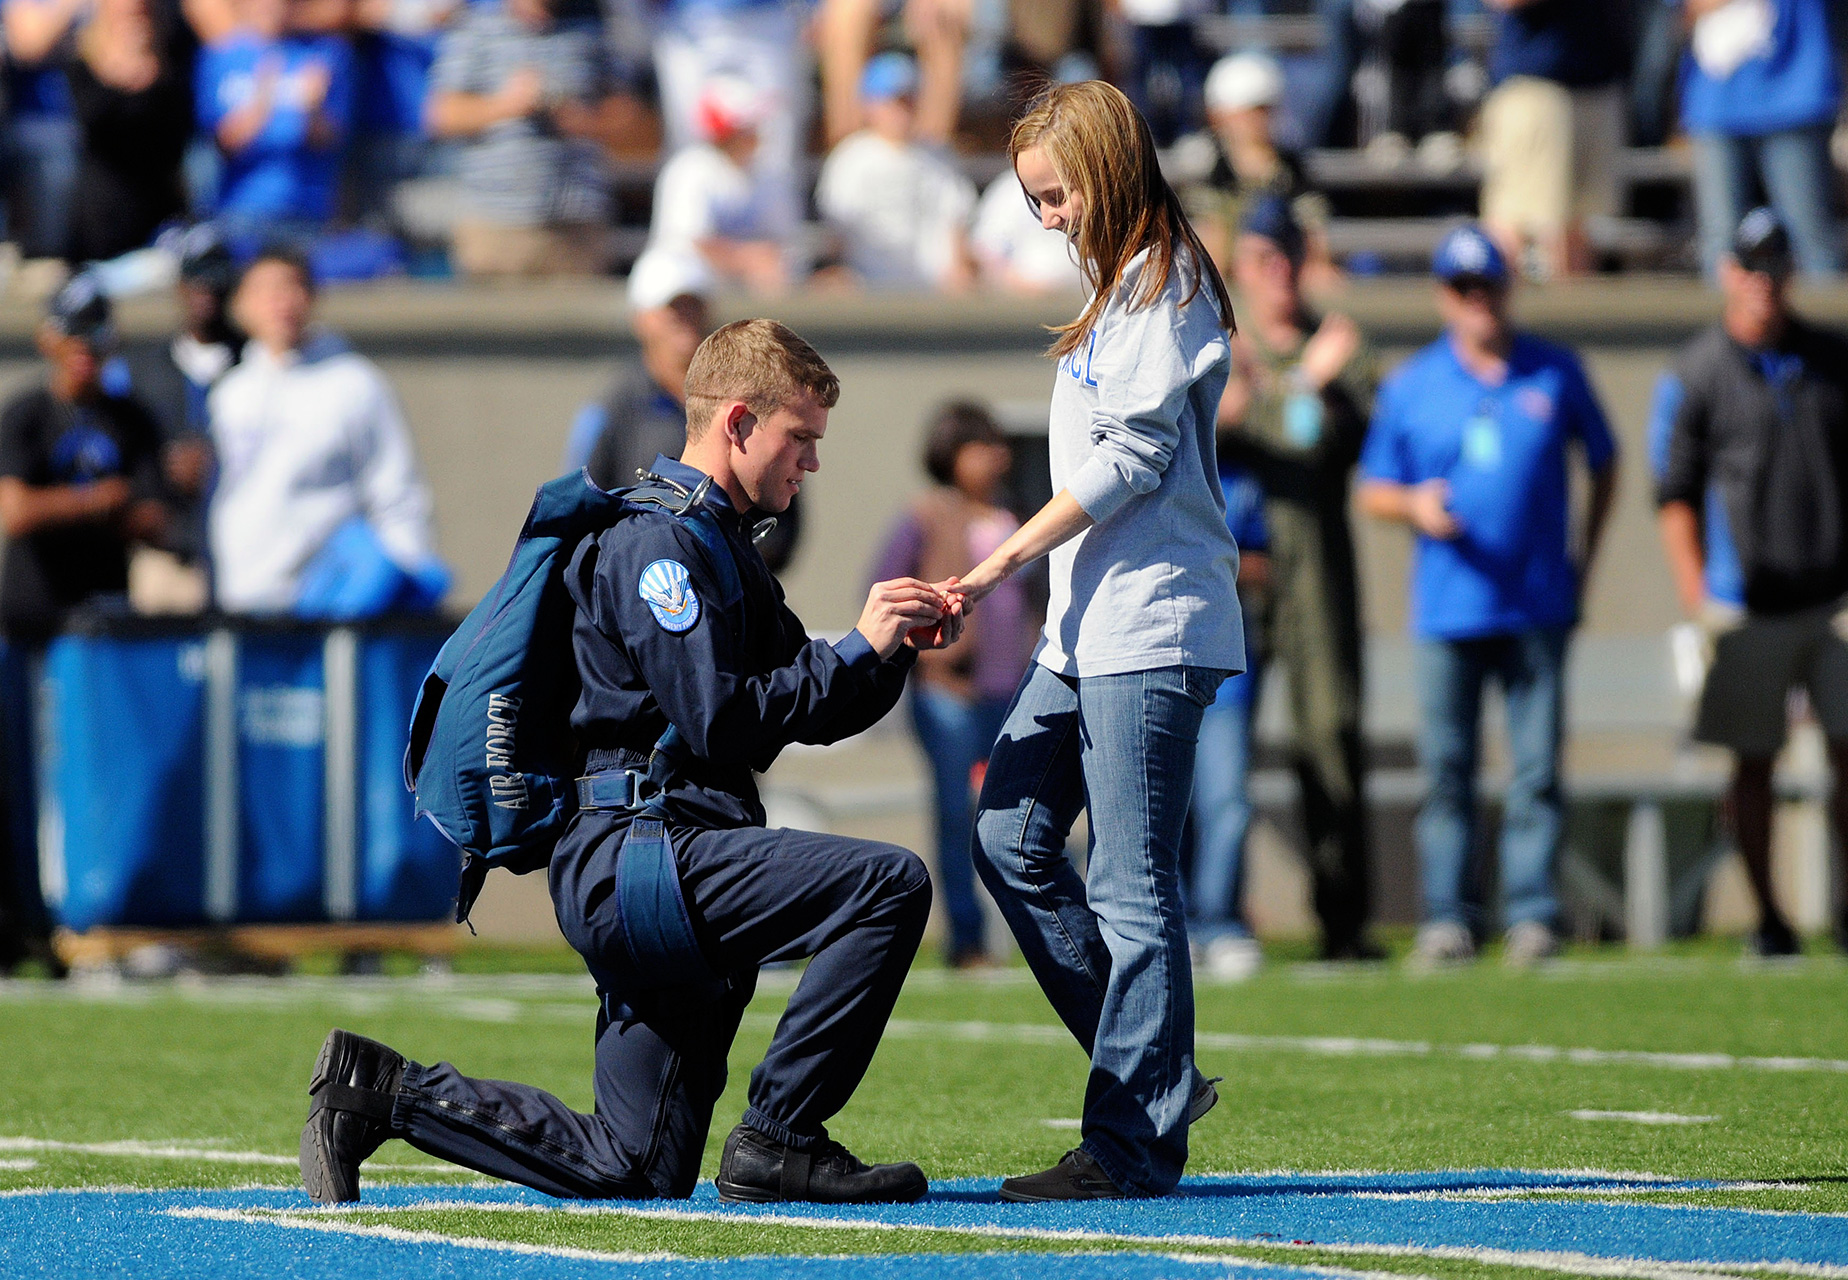 Talk about an entrance! After skydiving into Falcon Stadium ahead of a 2010 Air Force football game, a parachute jumper used his moment in the spotlight to ask THE question.